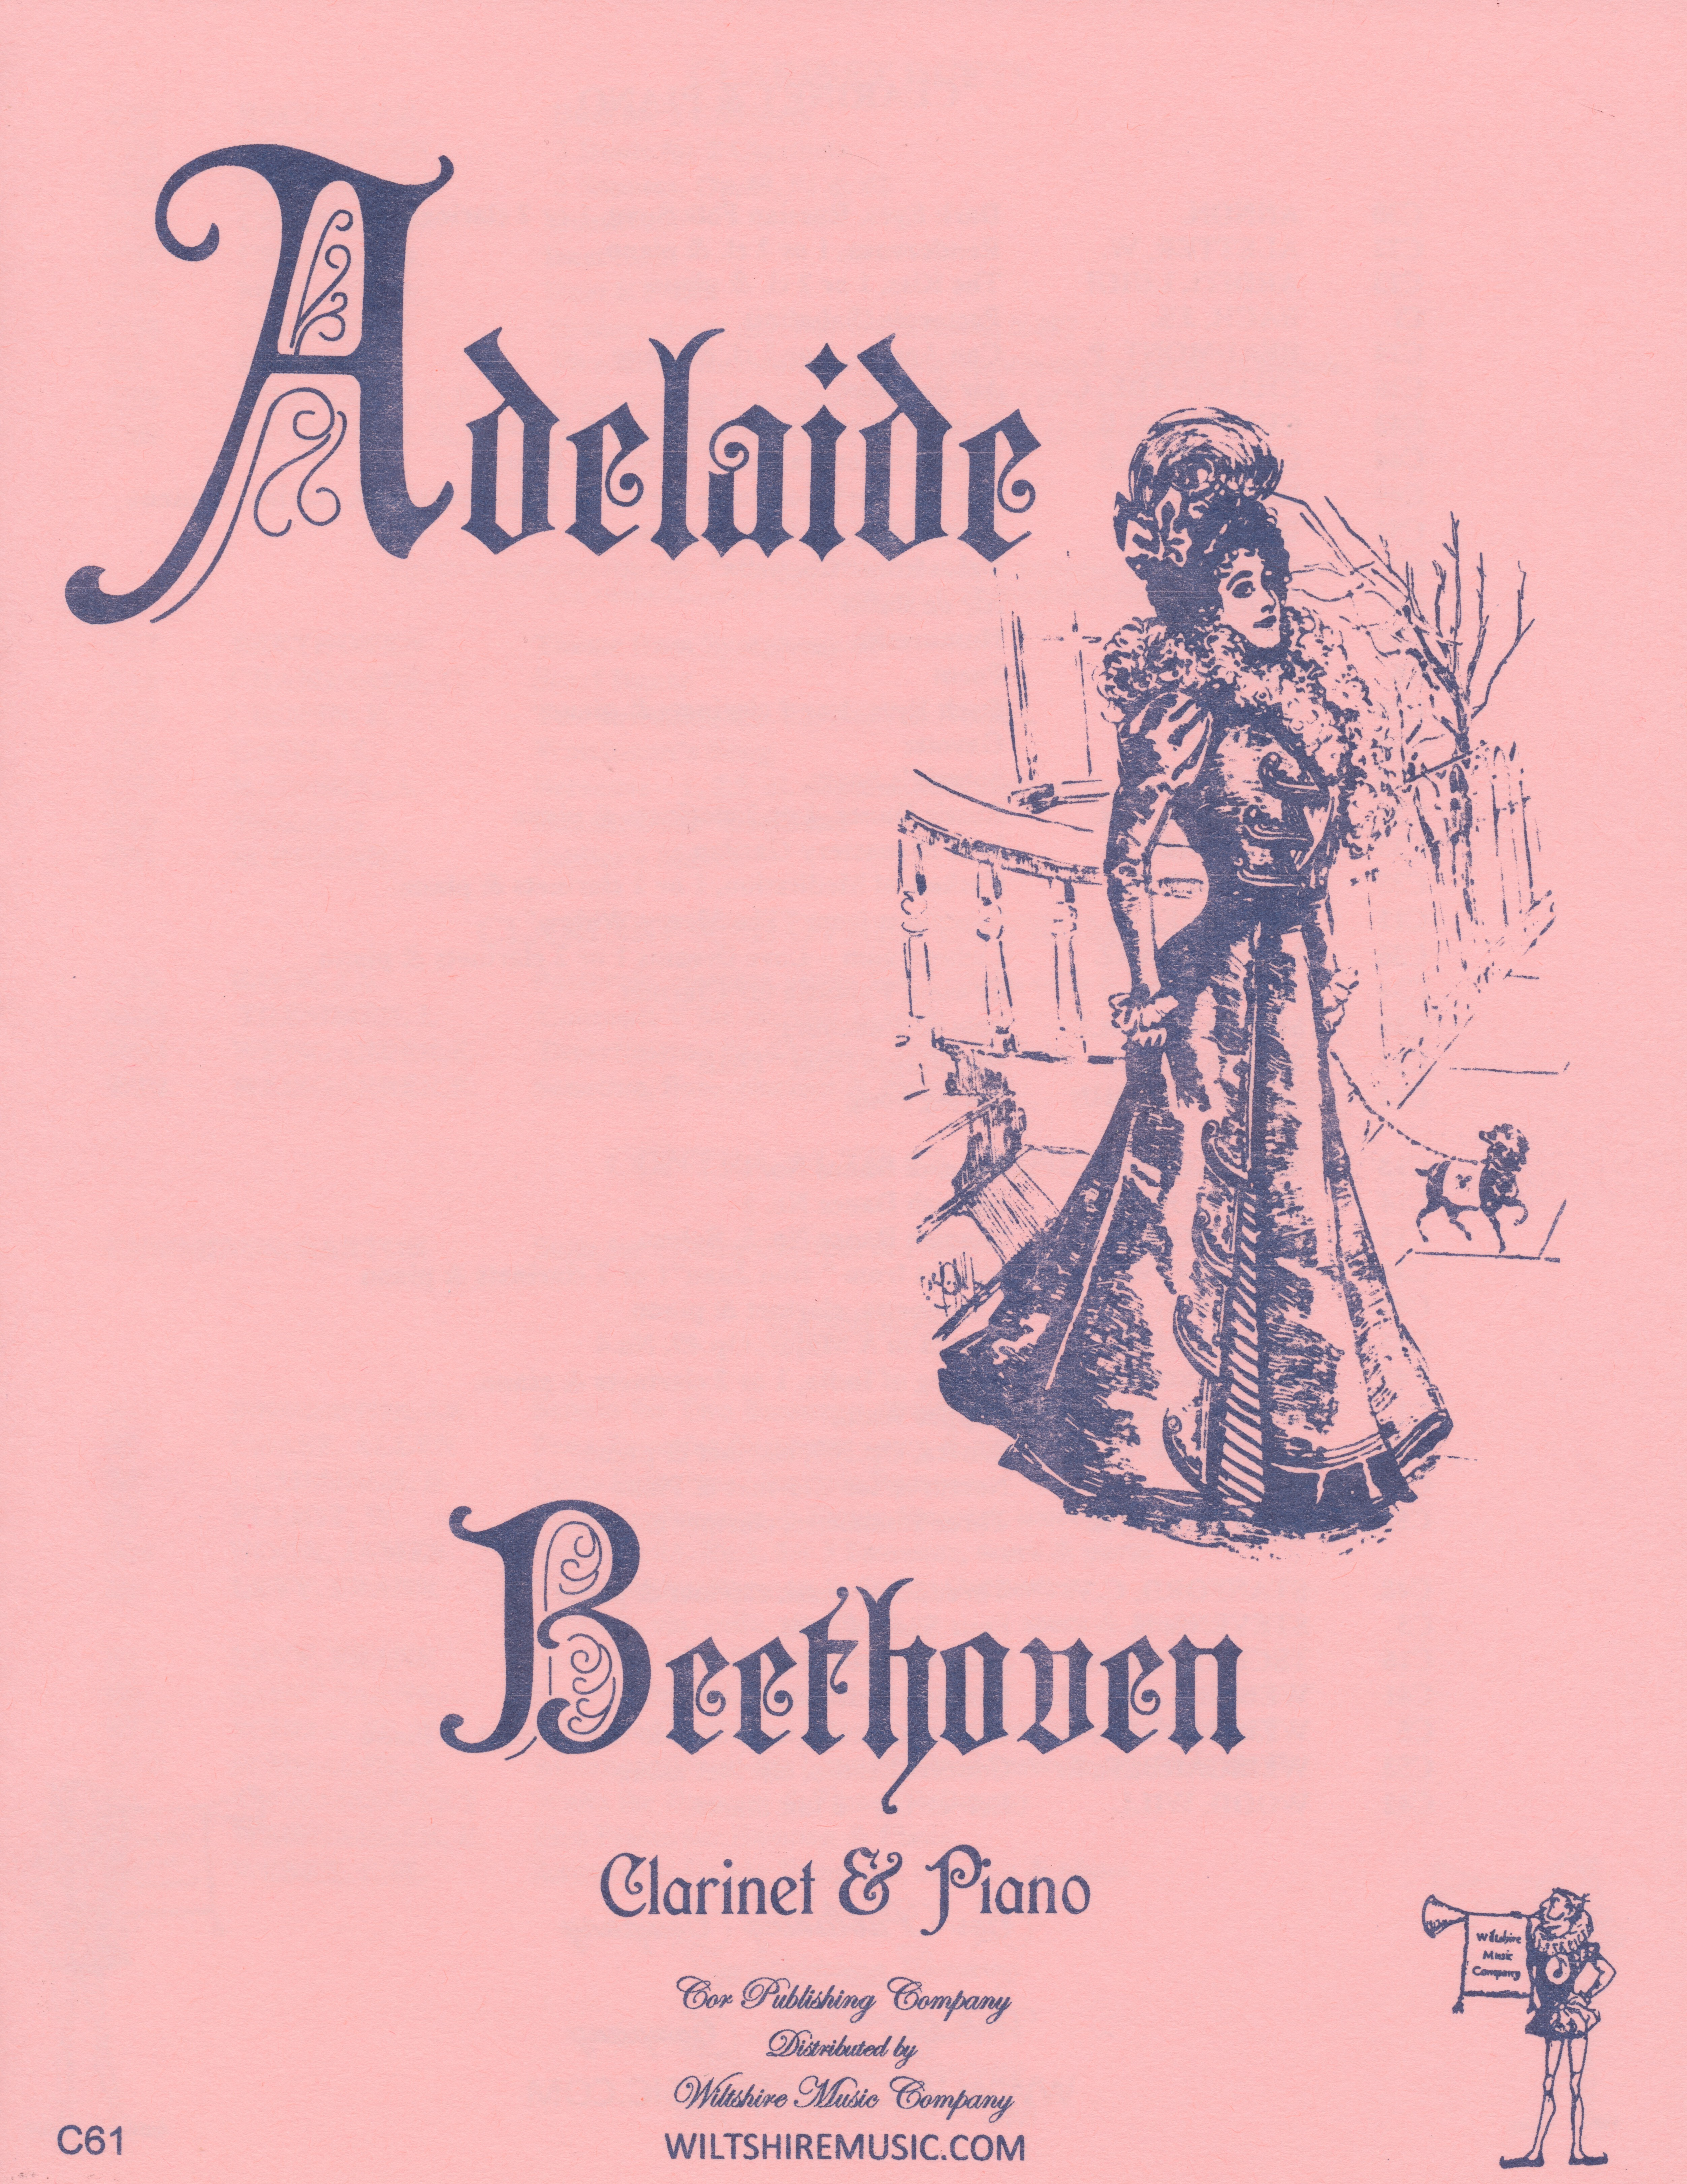 Adelaide, Beethoven, clarinet & piano